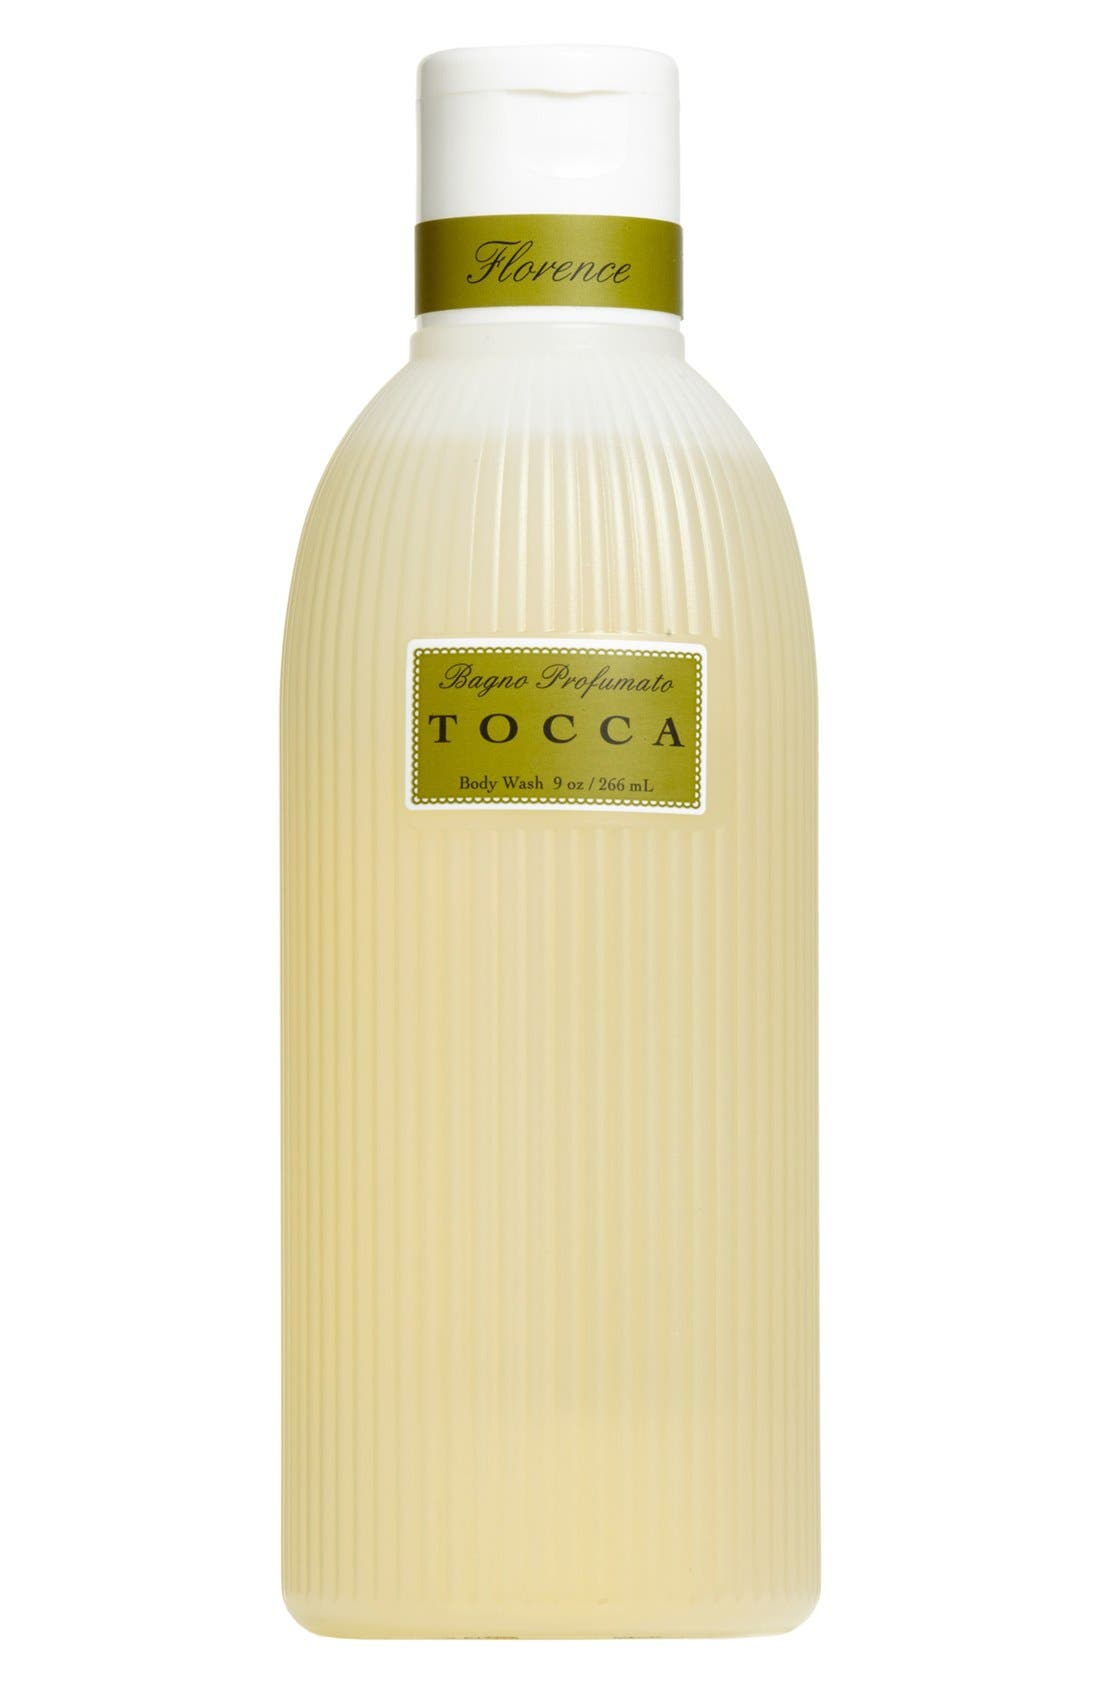 TOCCA 'Florence' Body Wash